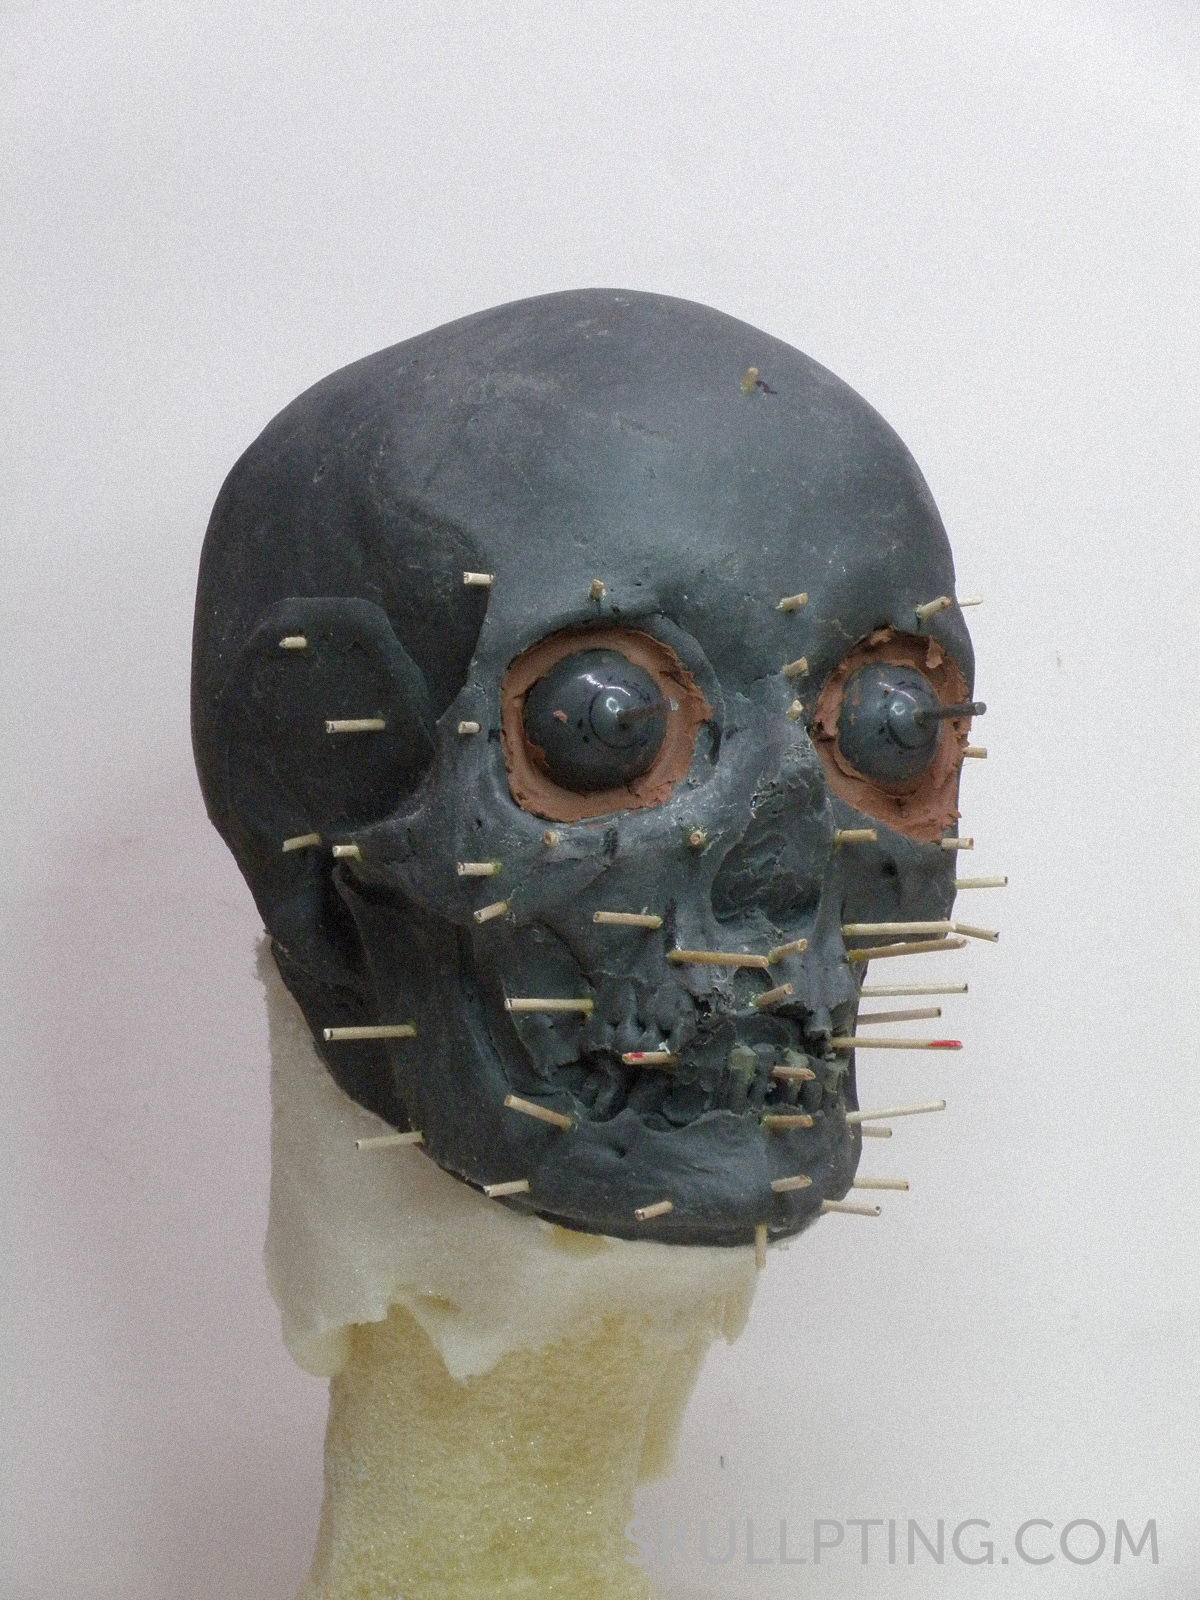 the replica of the skull with pegs to show the tissue thicknesses